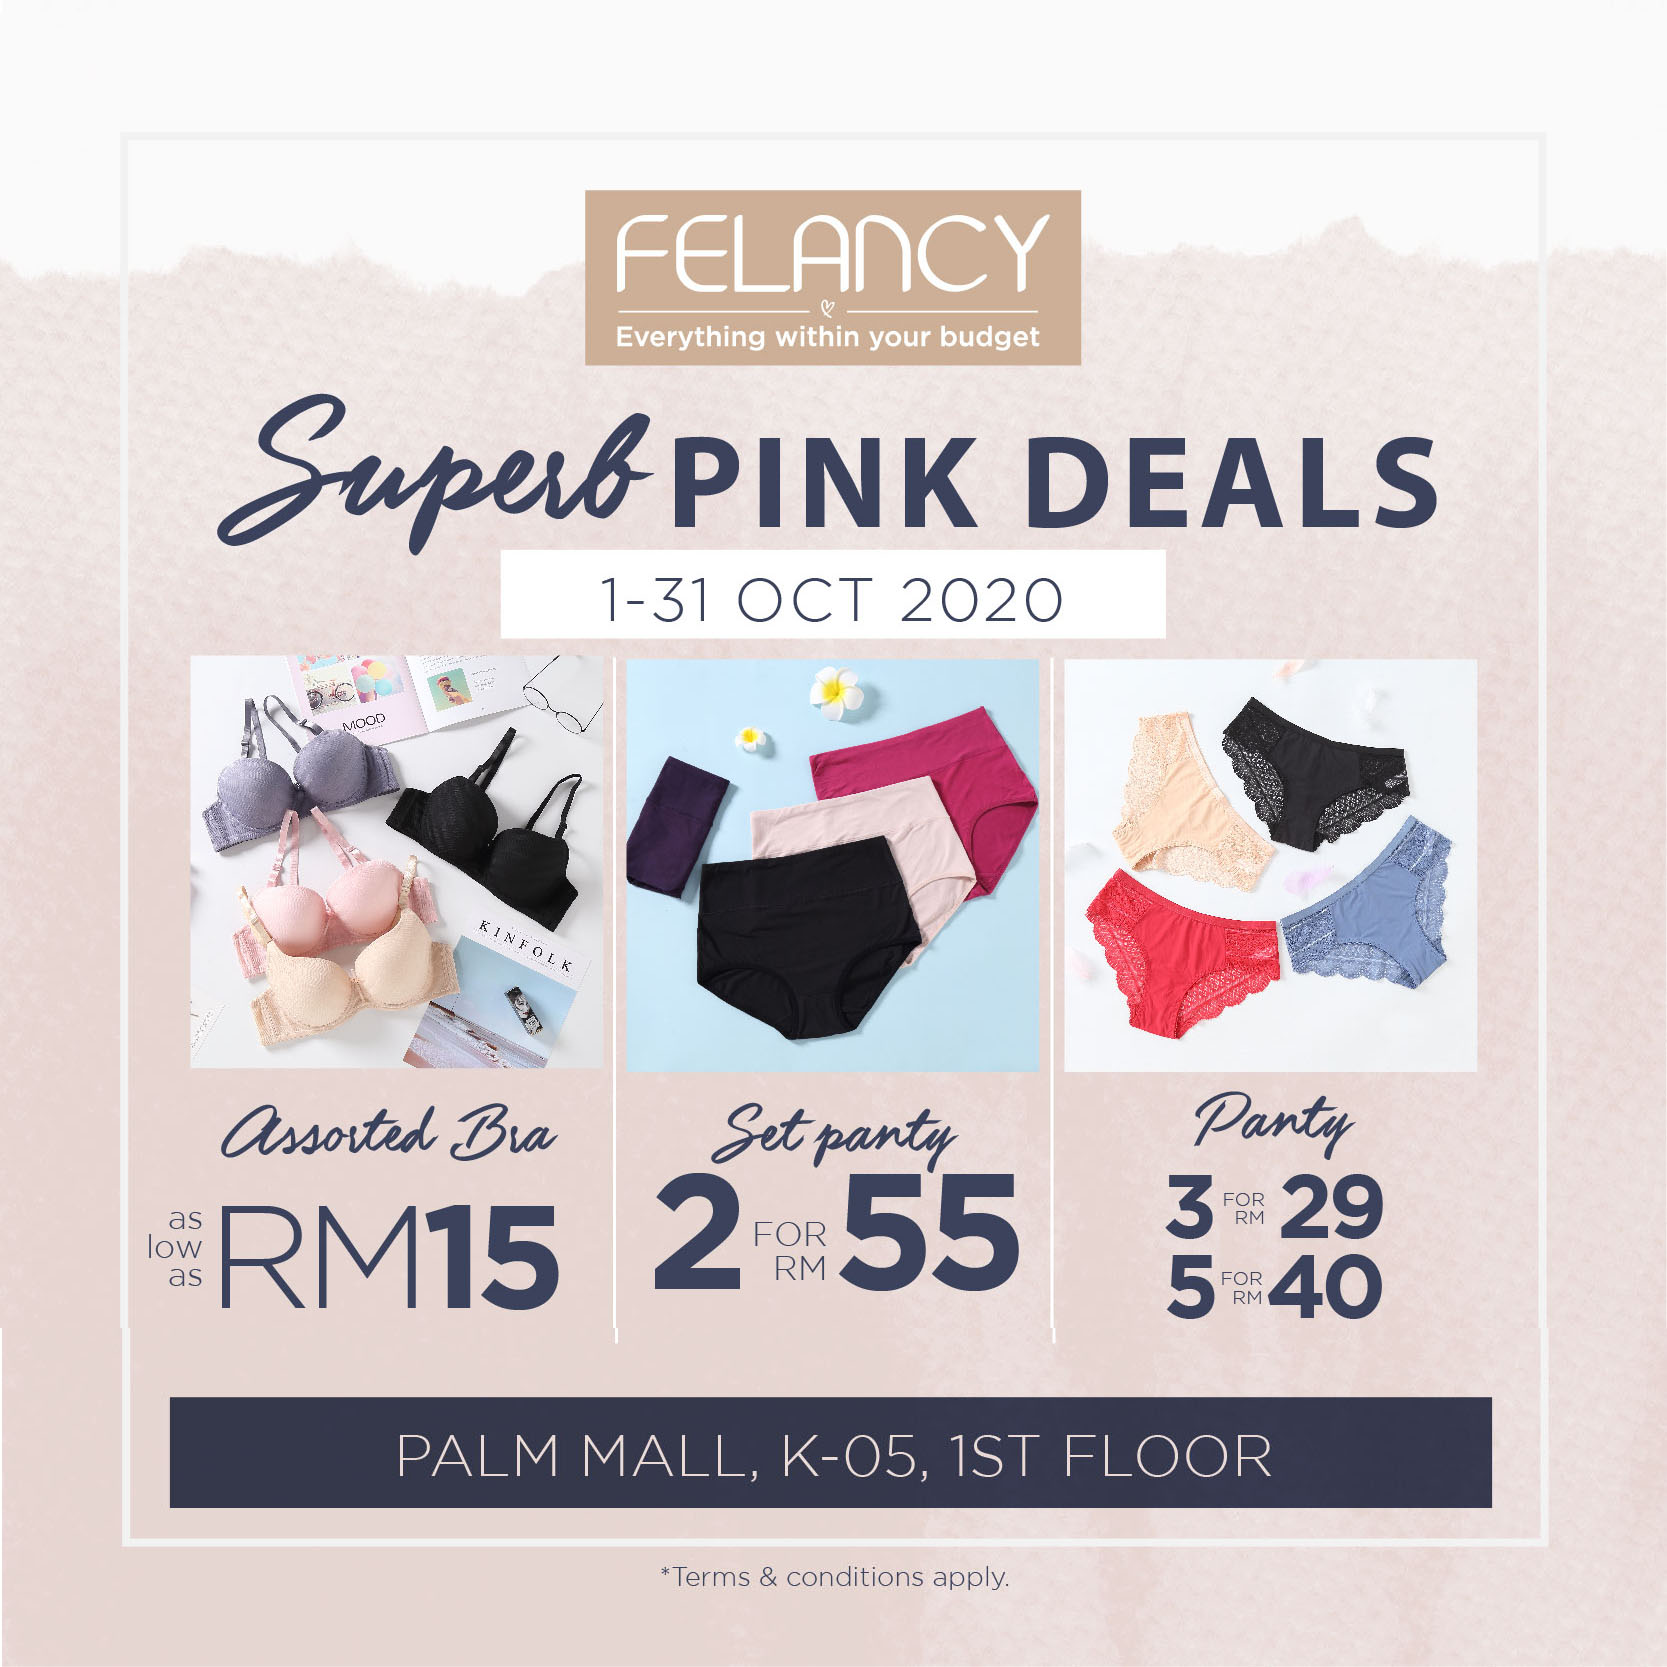 Superb Pink Deals